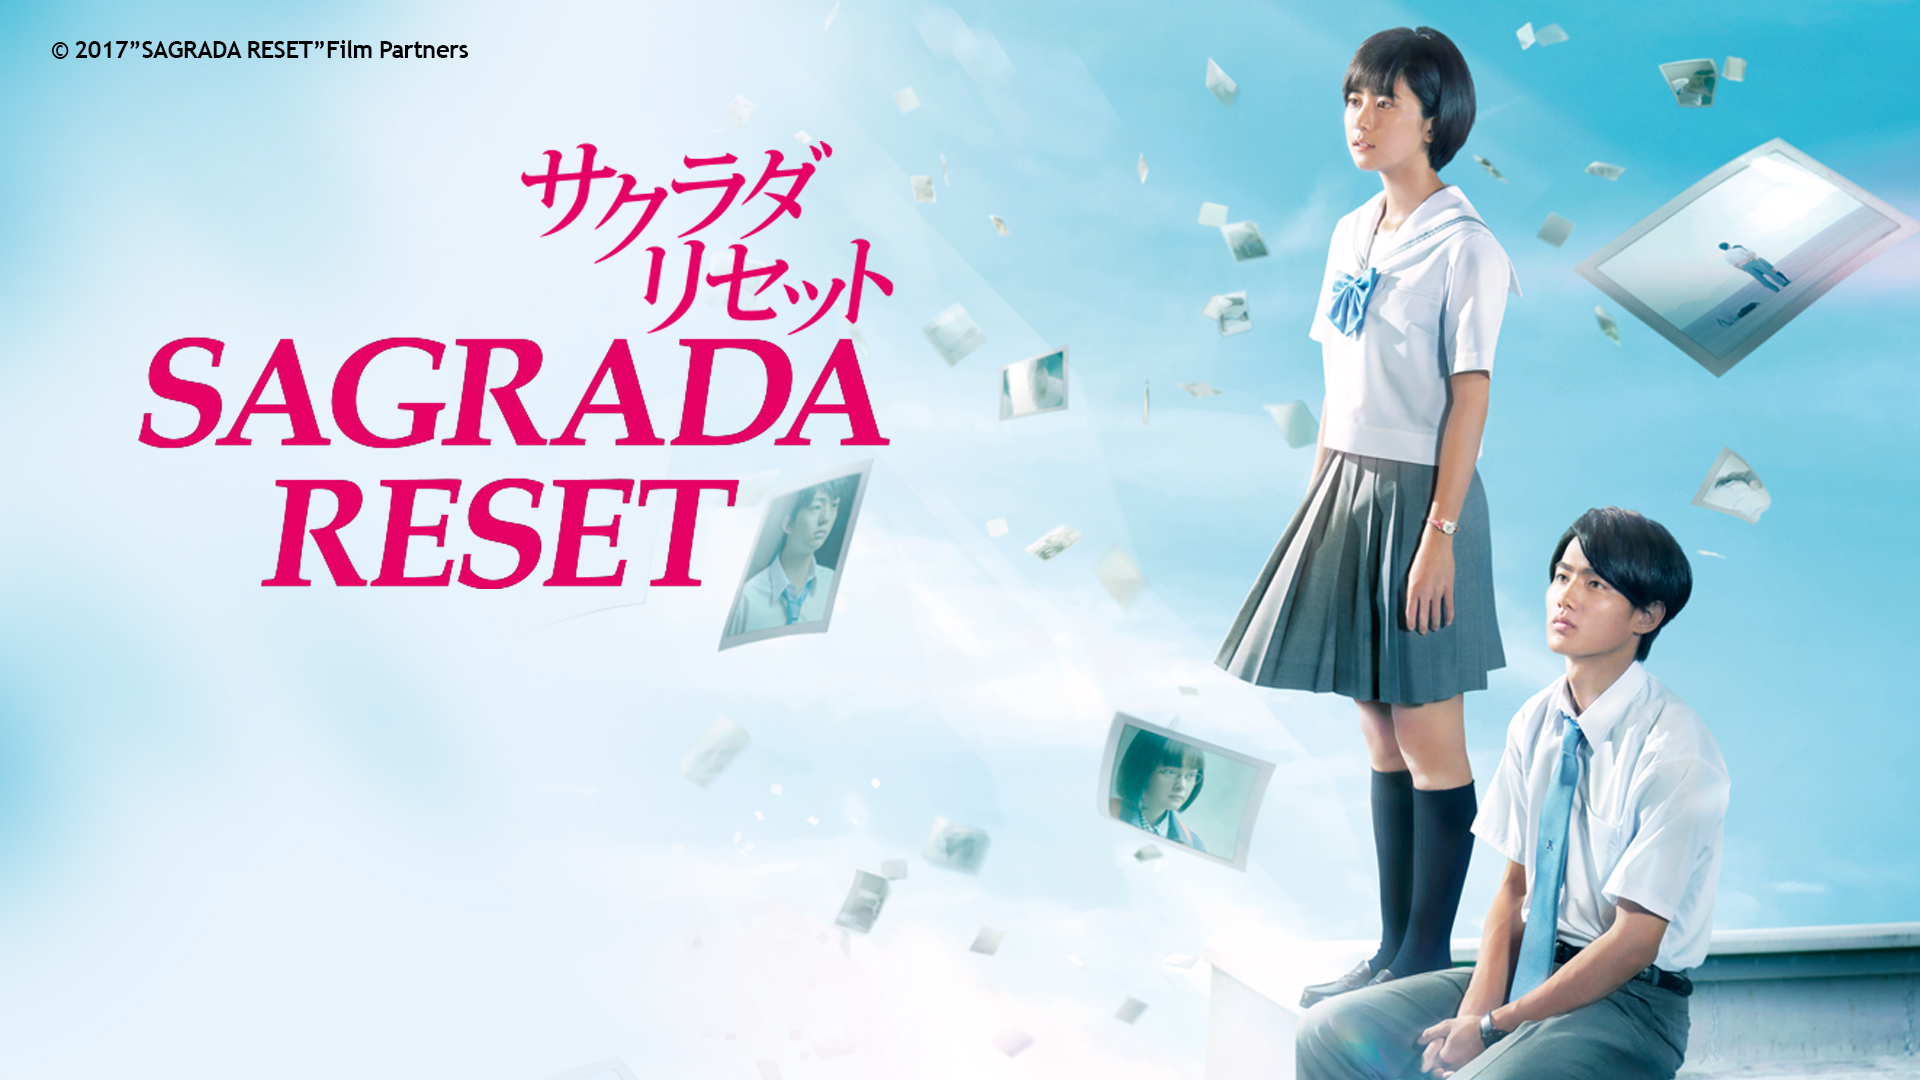 SAGRADA RESET (LIVE ACTION)